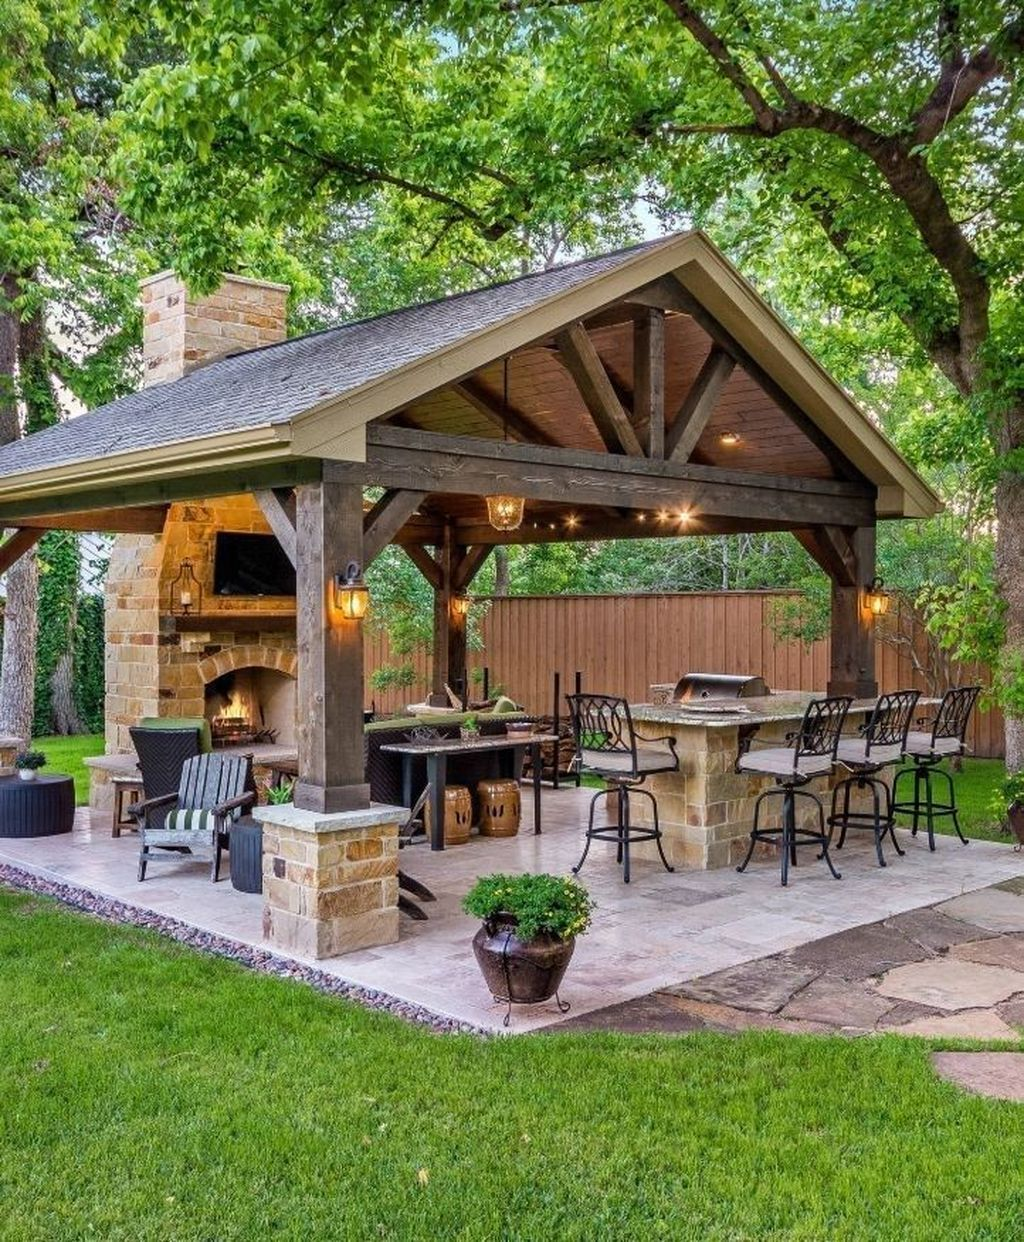 58 Small Diy Outdoor Patio Design Ideas Patio Deck Designs Small Backyard Patio Outdoor Patio Designs